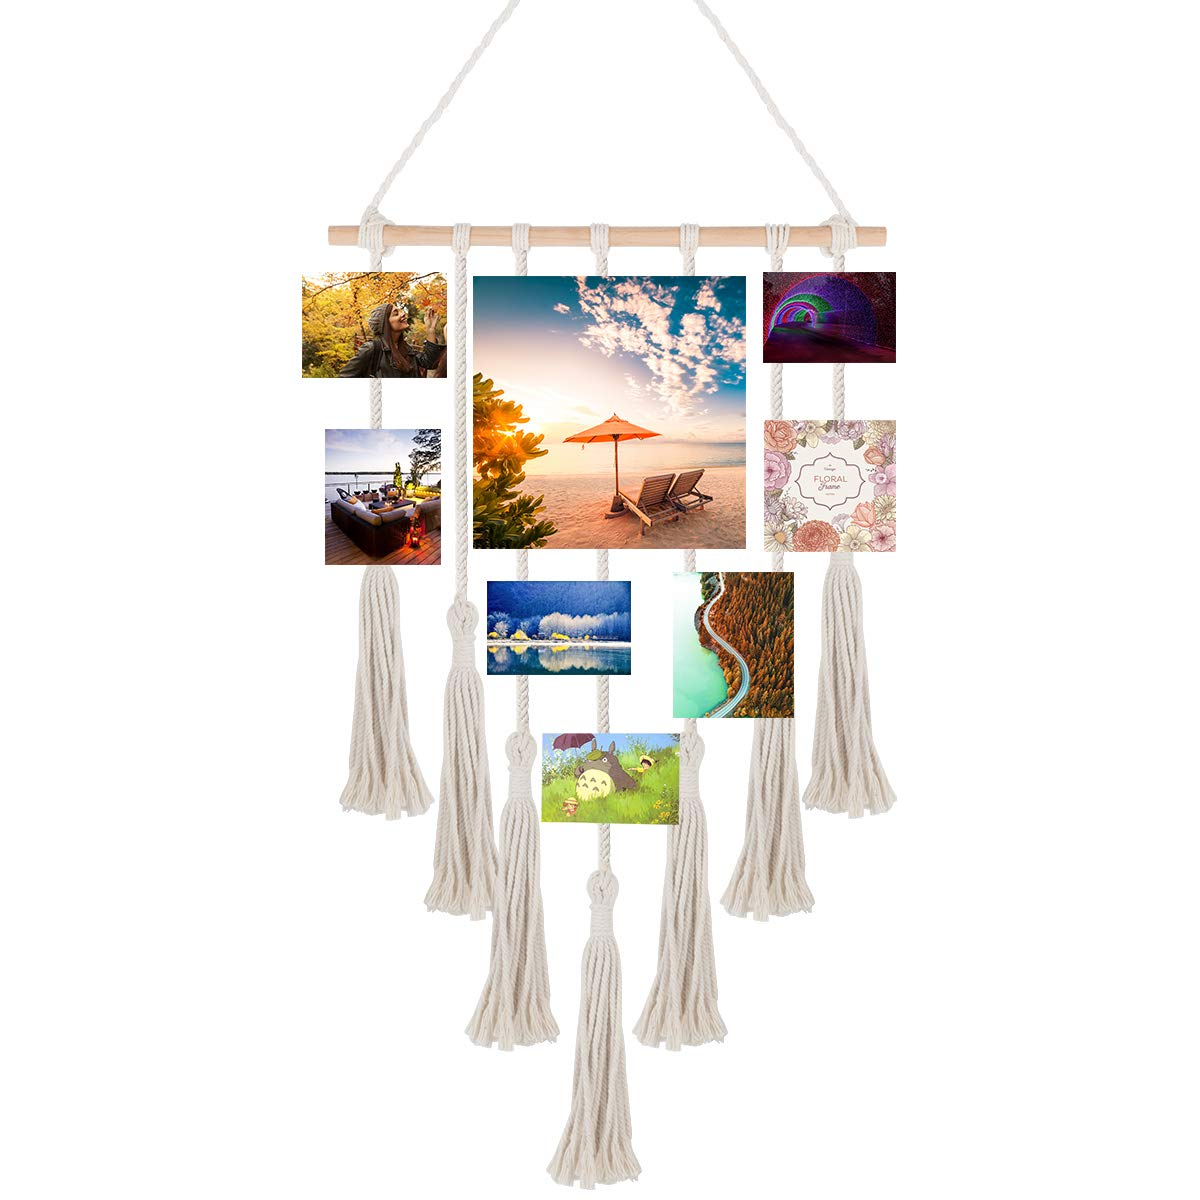 Hanging Photo Display for $9.99 w/code